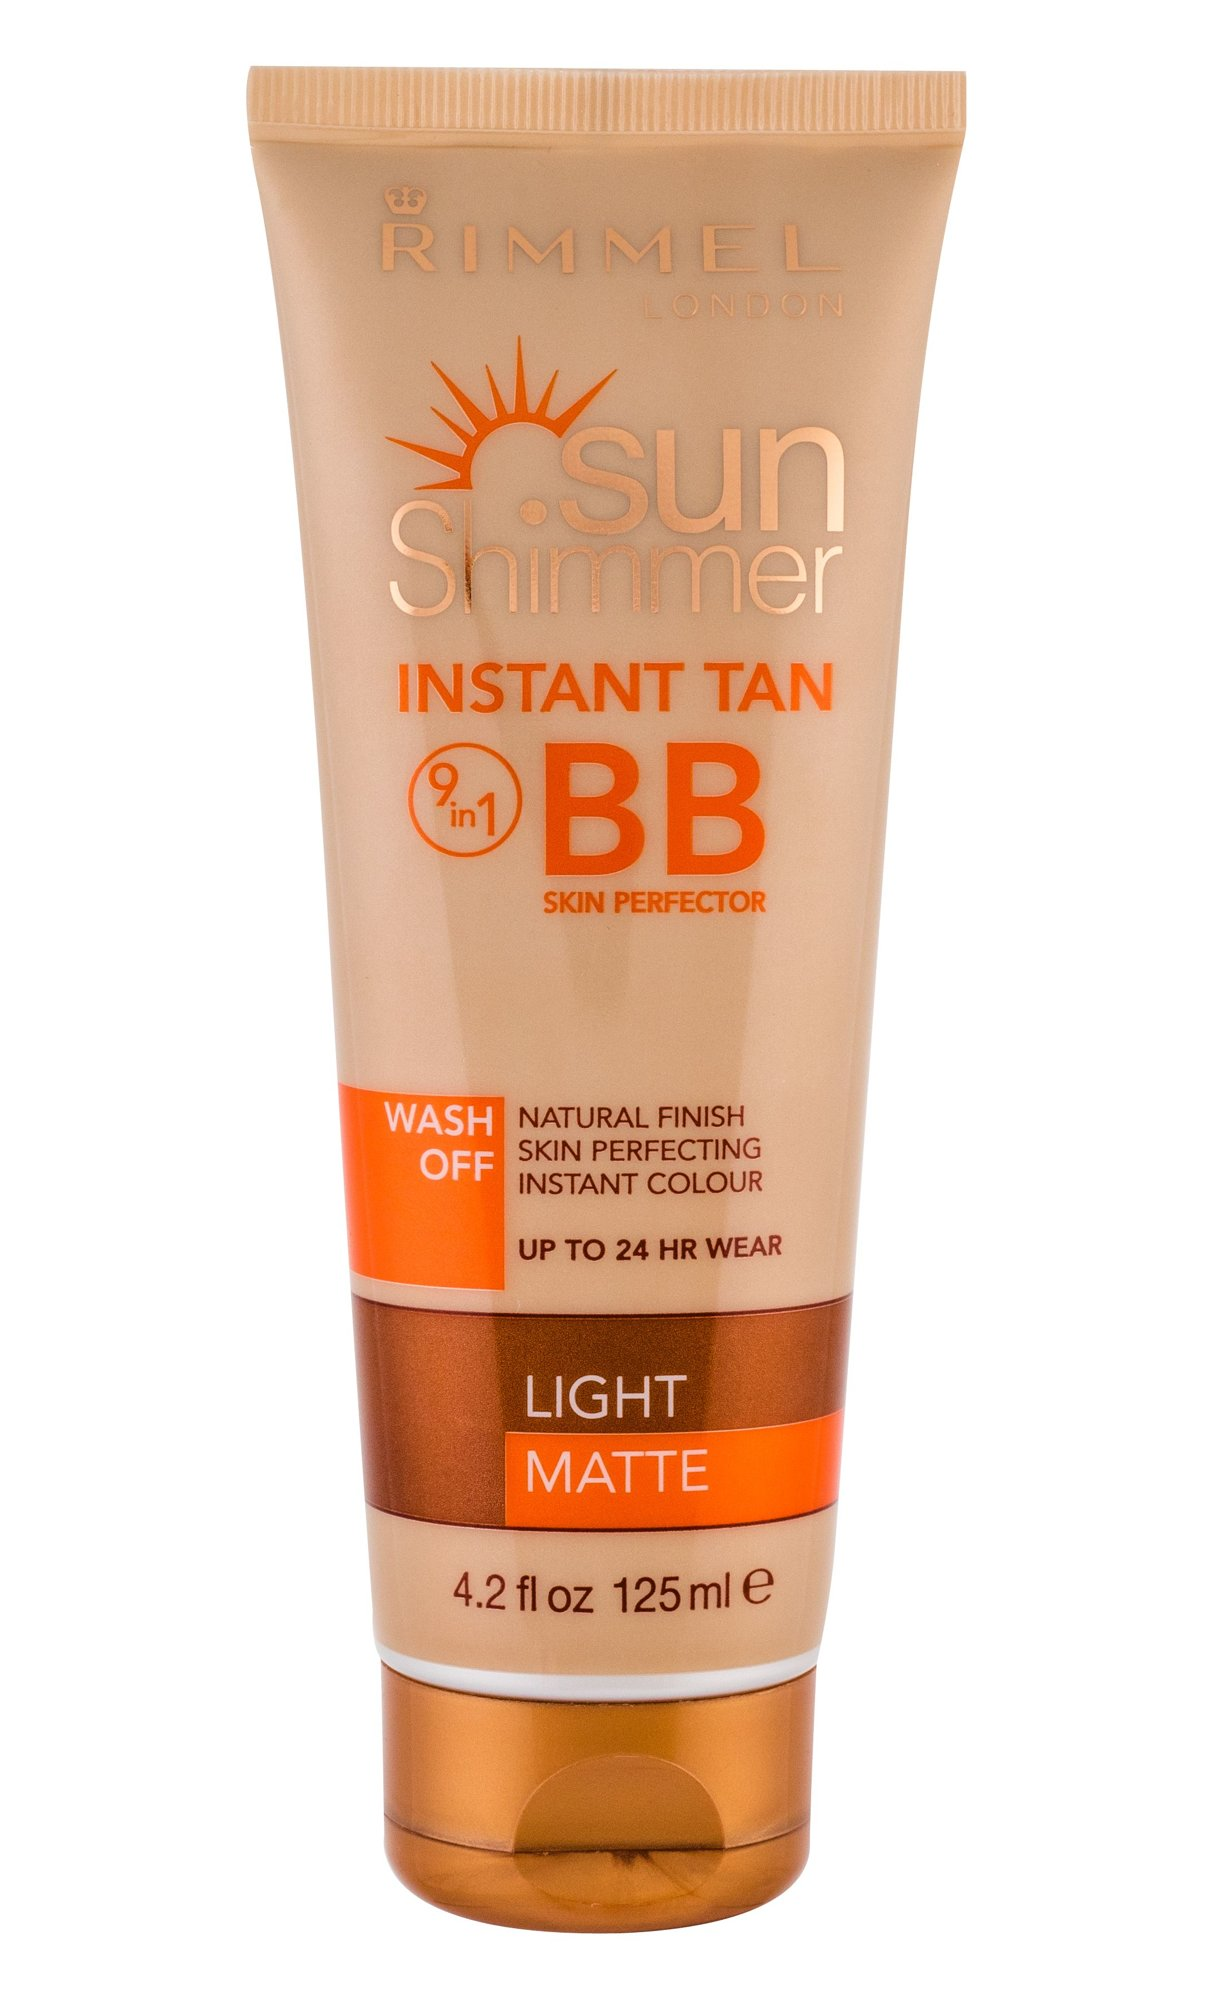 Rimmel London Sun Shimmer BB Cream 125ml Light Matte